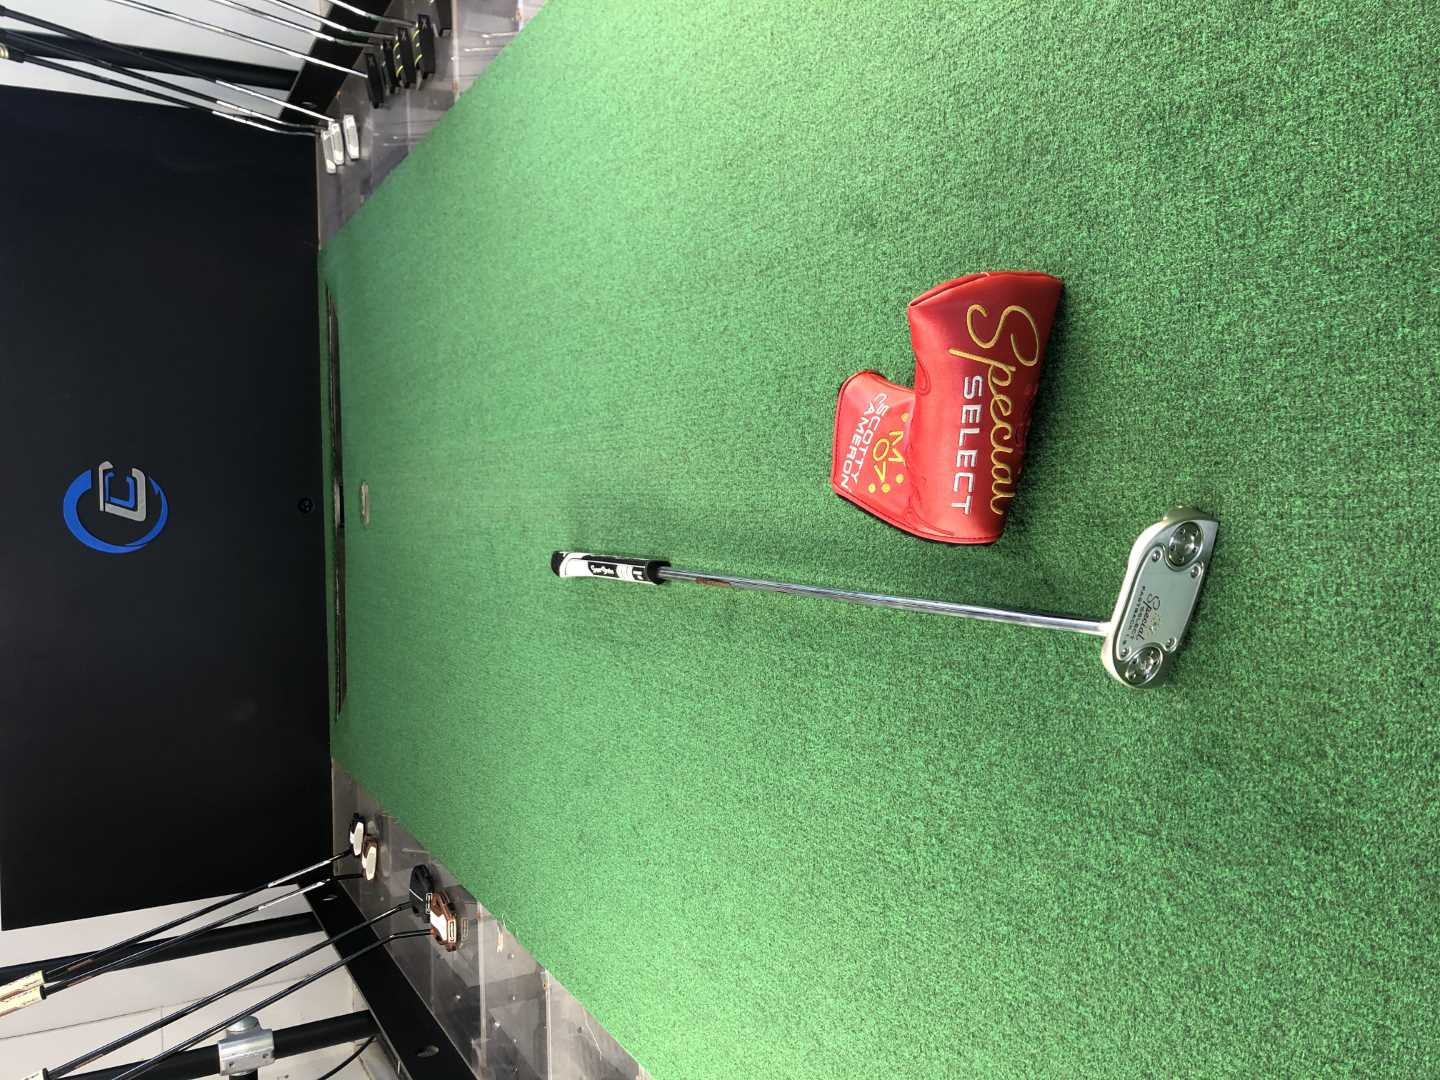 Scotty Cameron Fastback 1.5 Putter Pickup